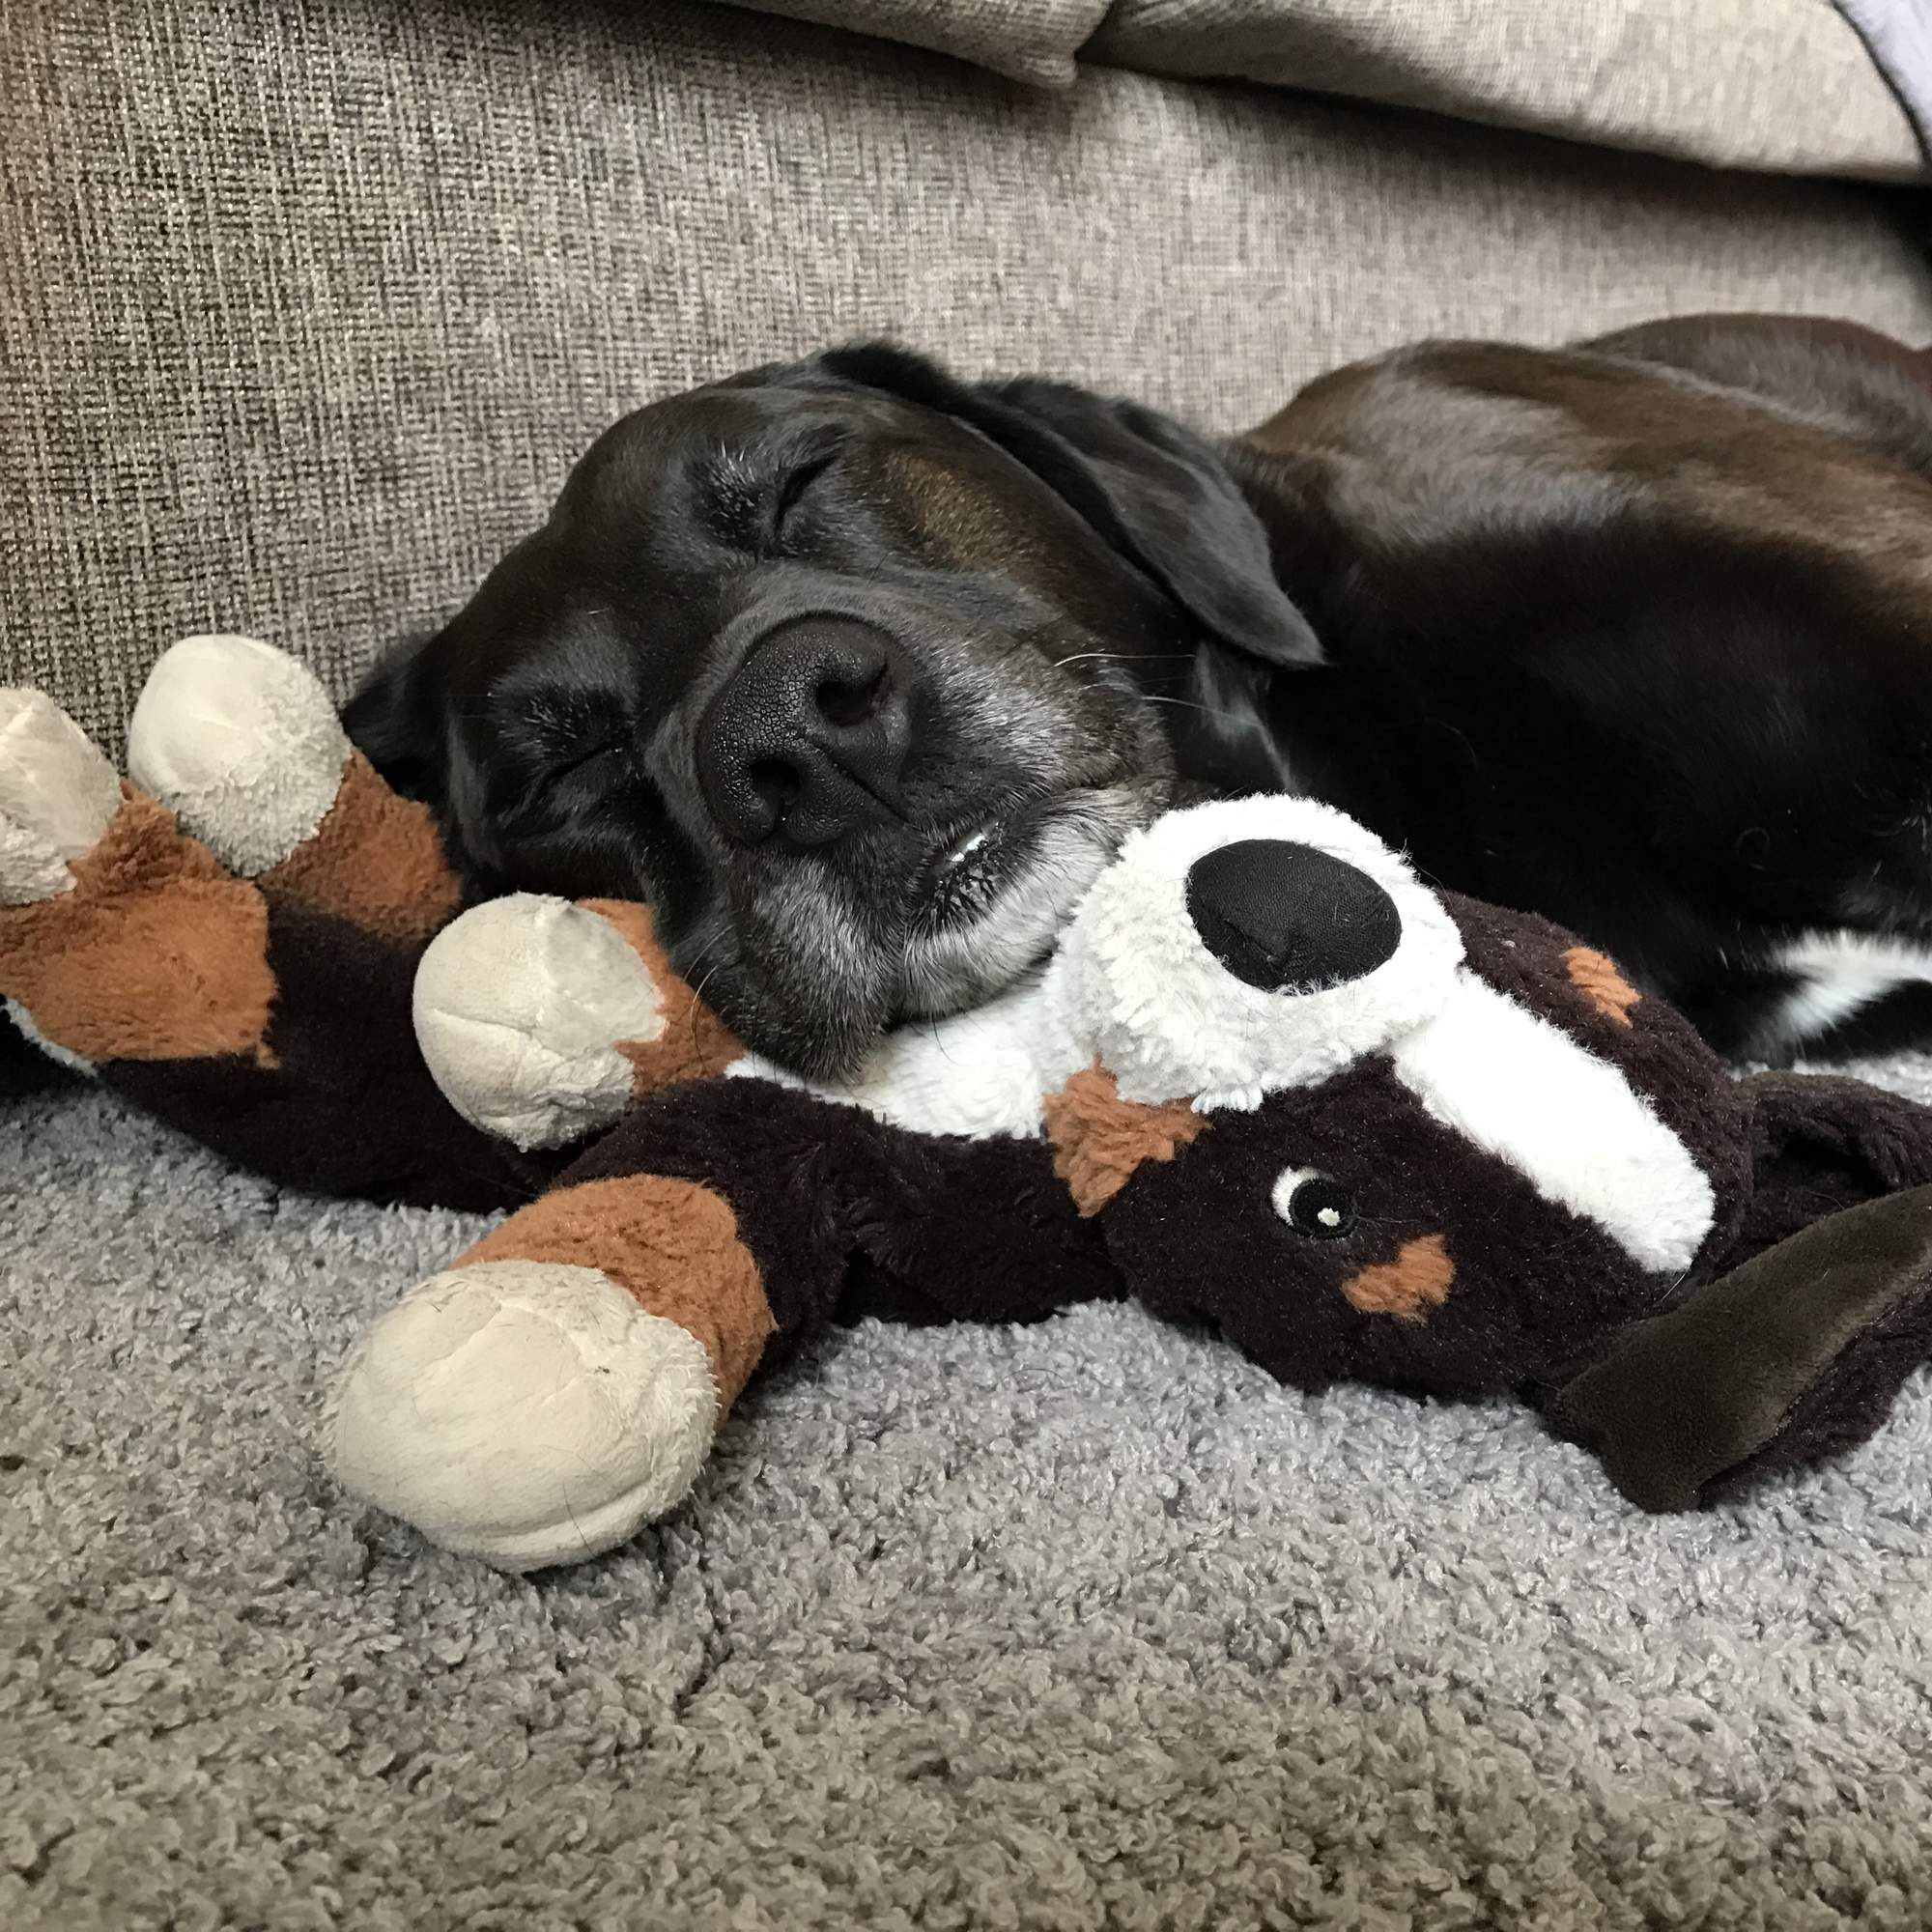 Sweet dog has been collecting stuffed animals for the past years